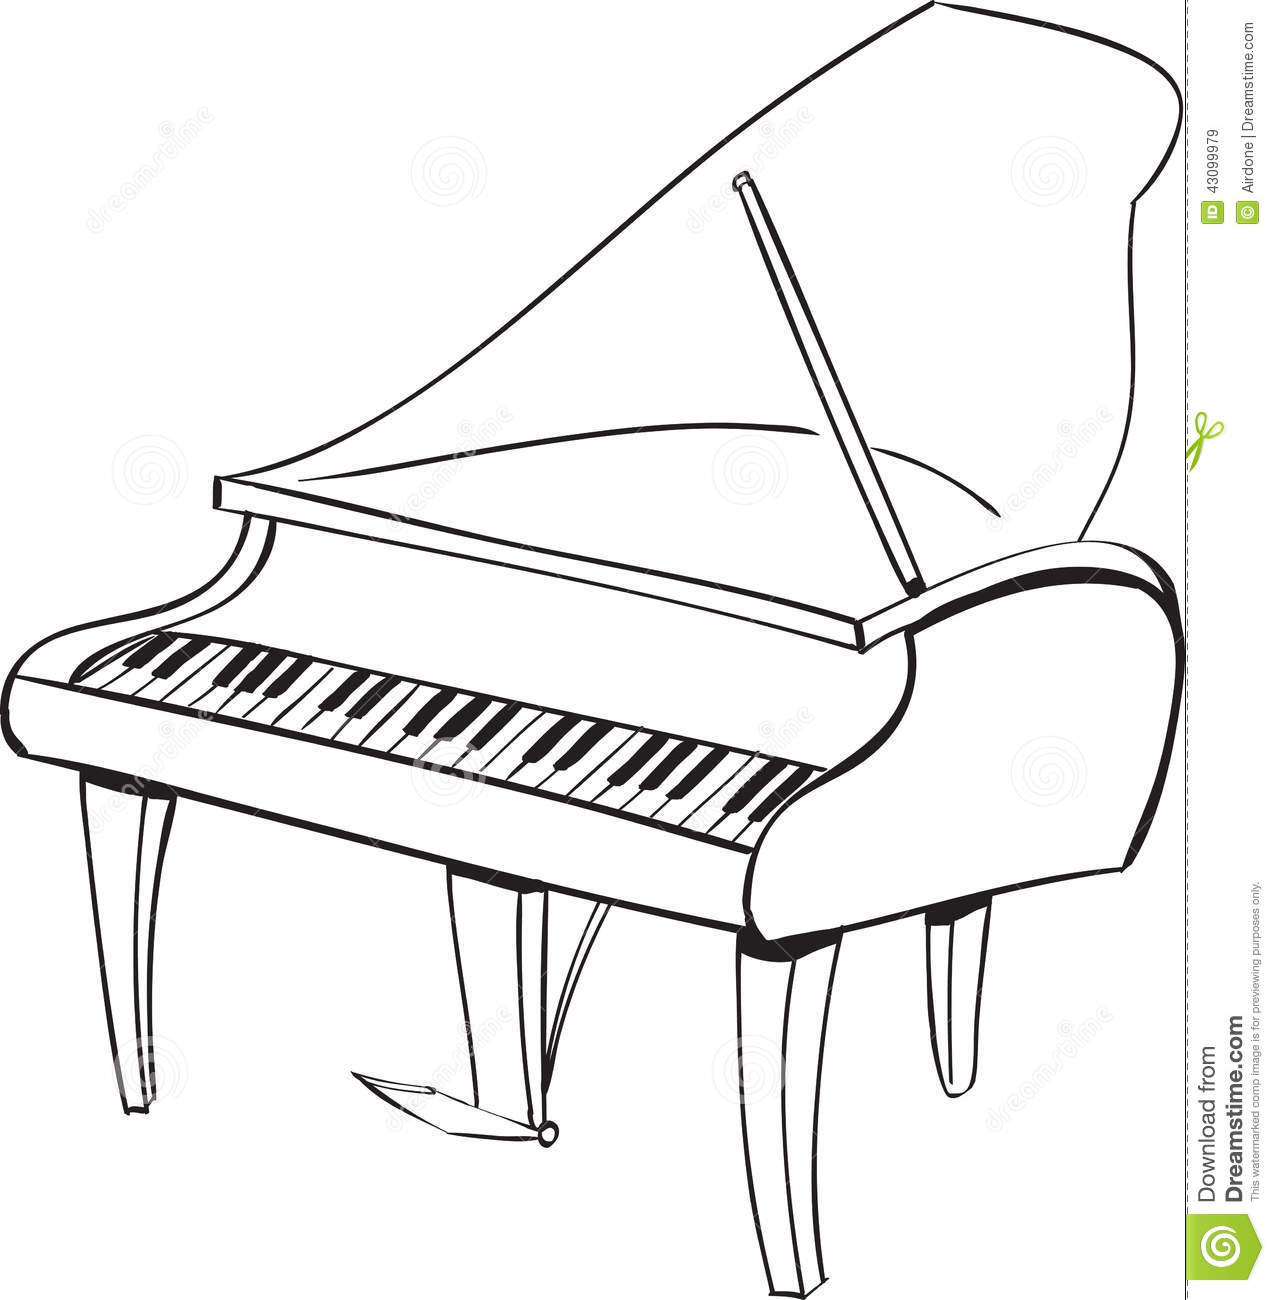 Music Instruments Clipart Piano.